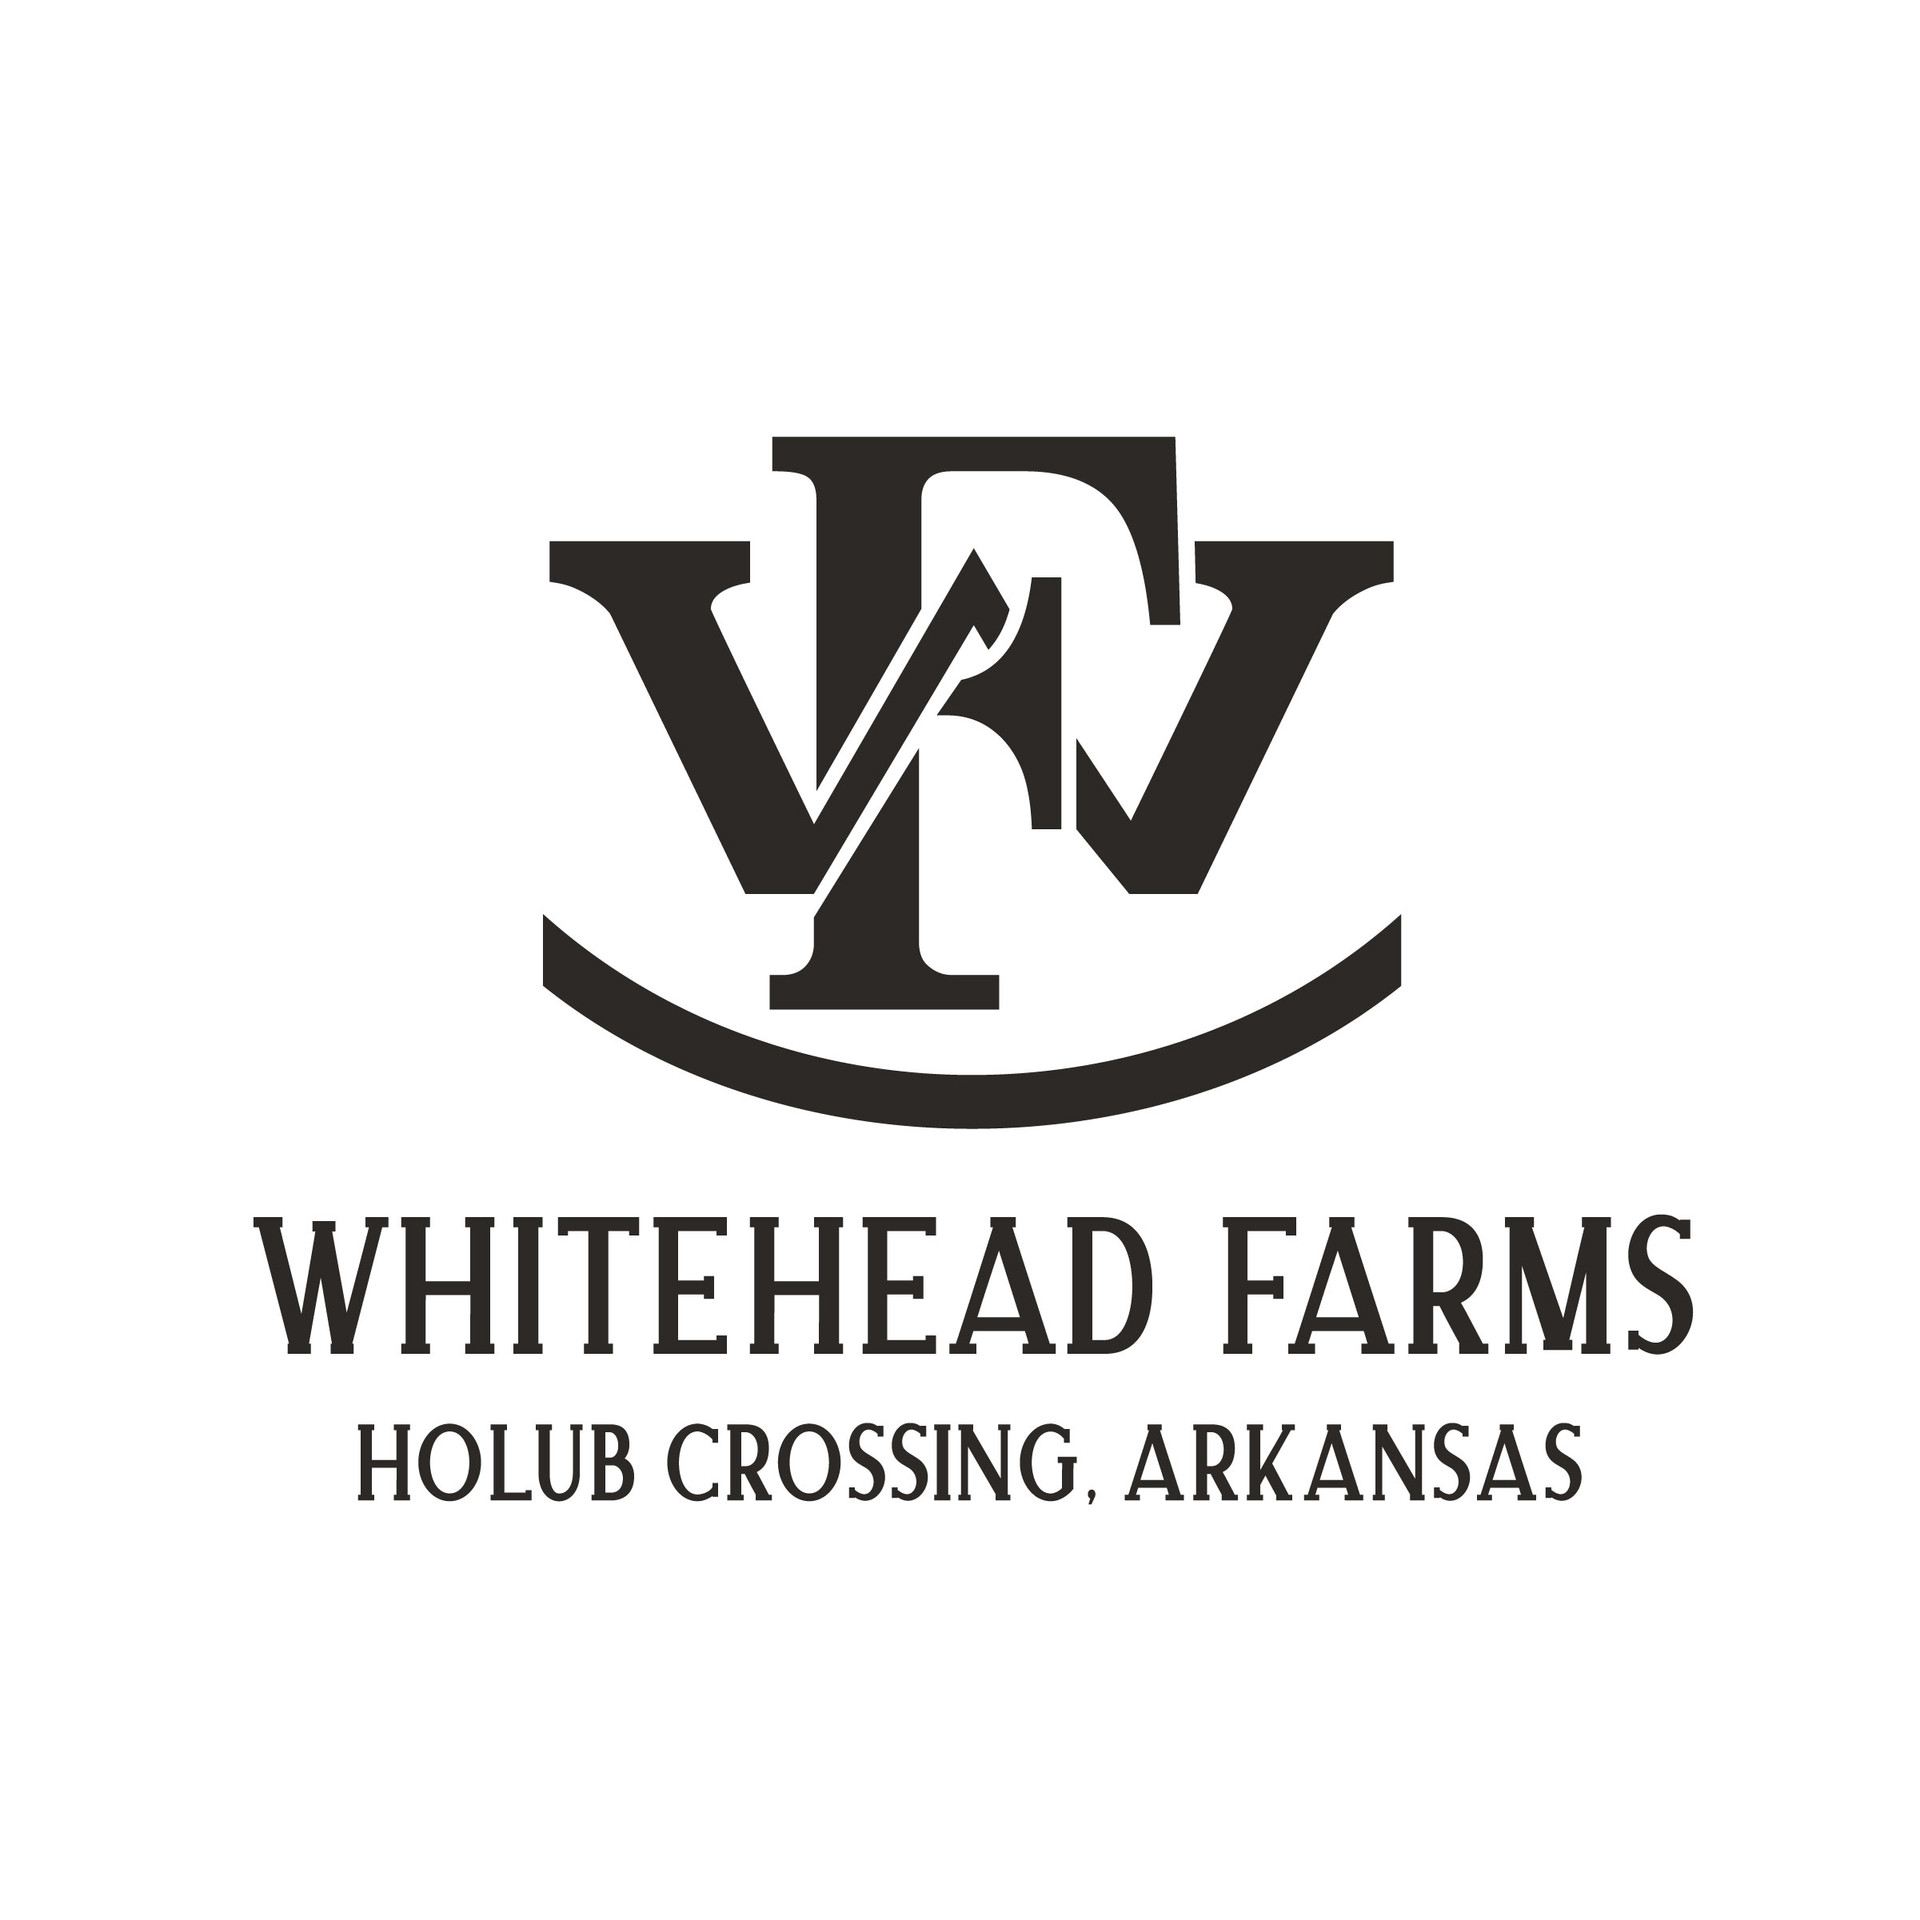 Whitehead Farms